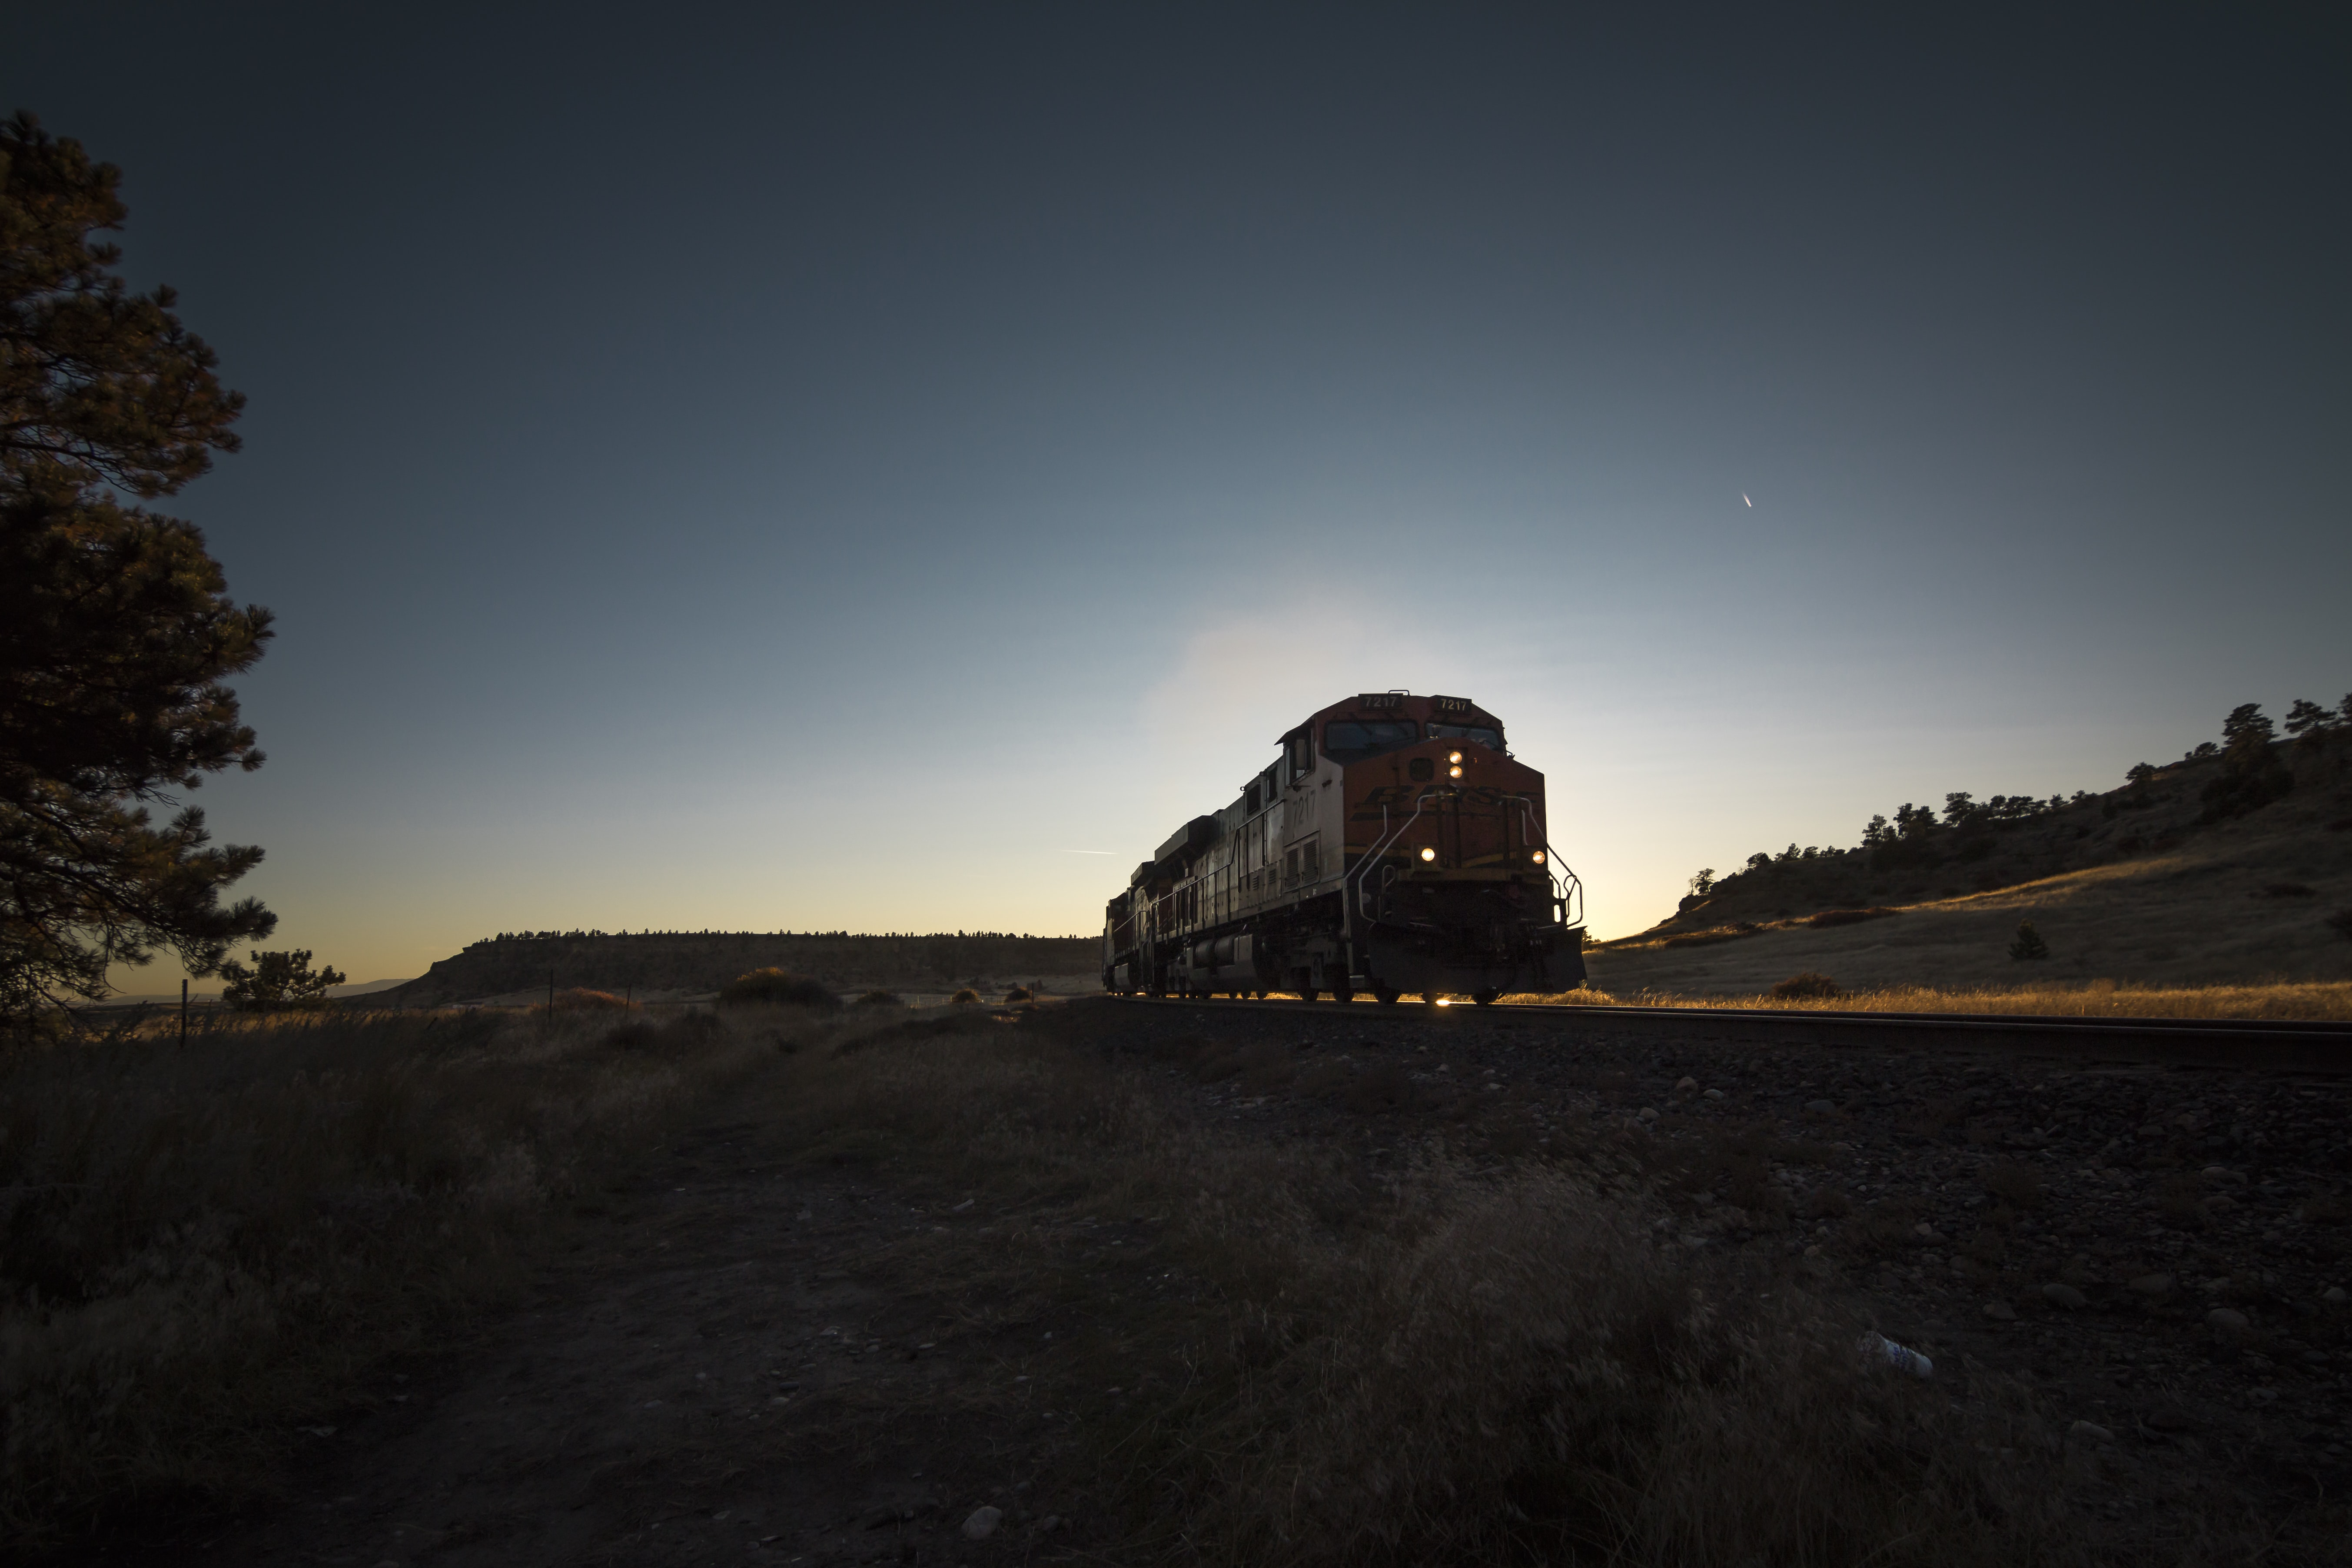 train travel during night